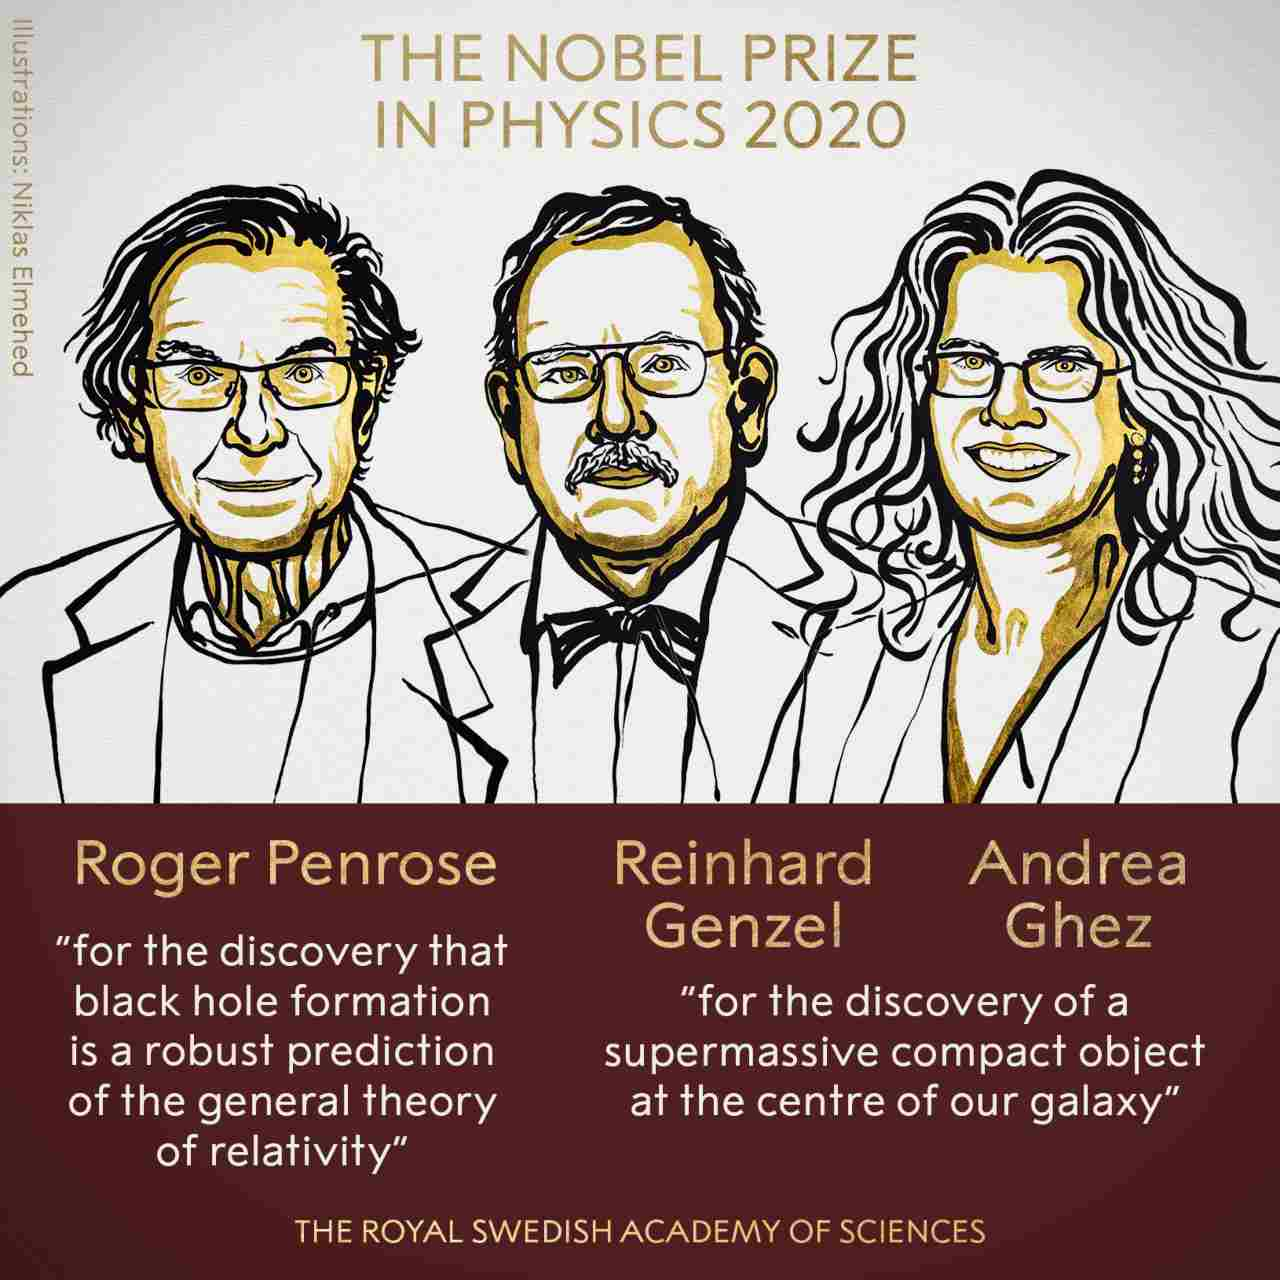 Trio win Nobel Physics Prize for black hole research""